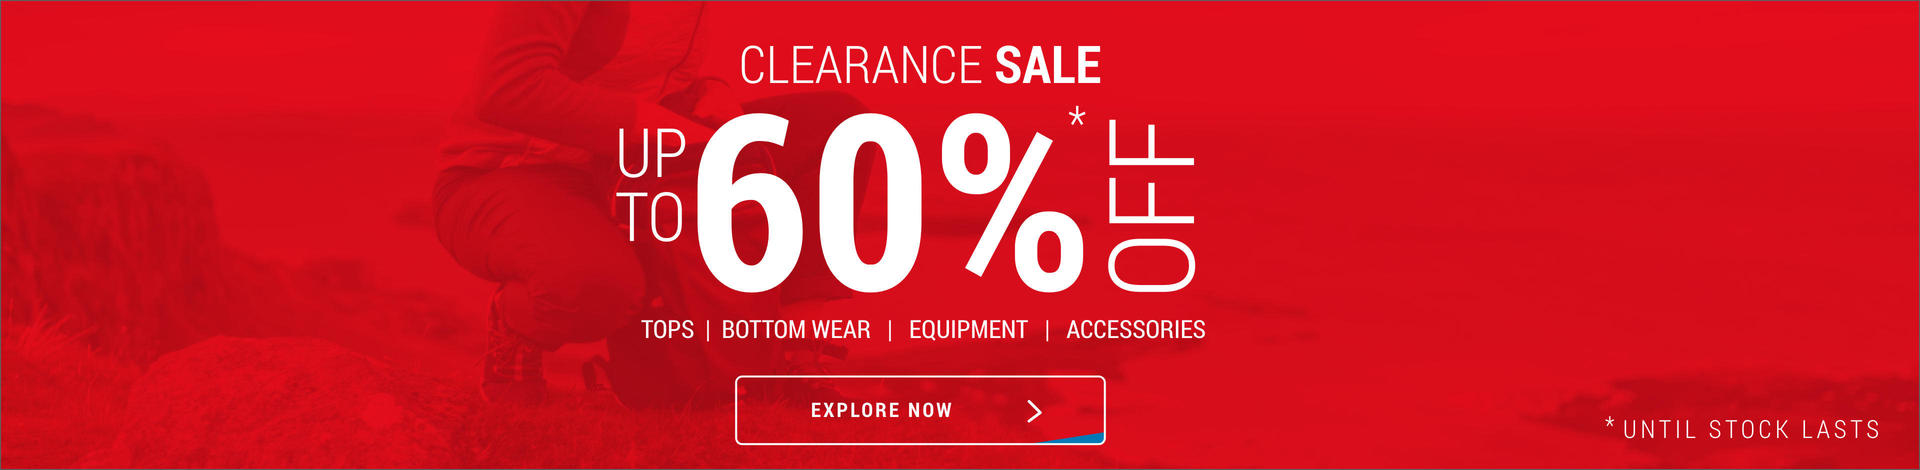 Decathlon Clearance products